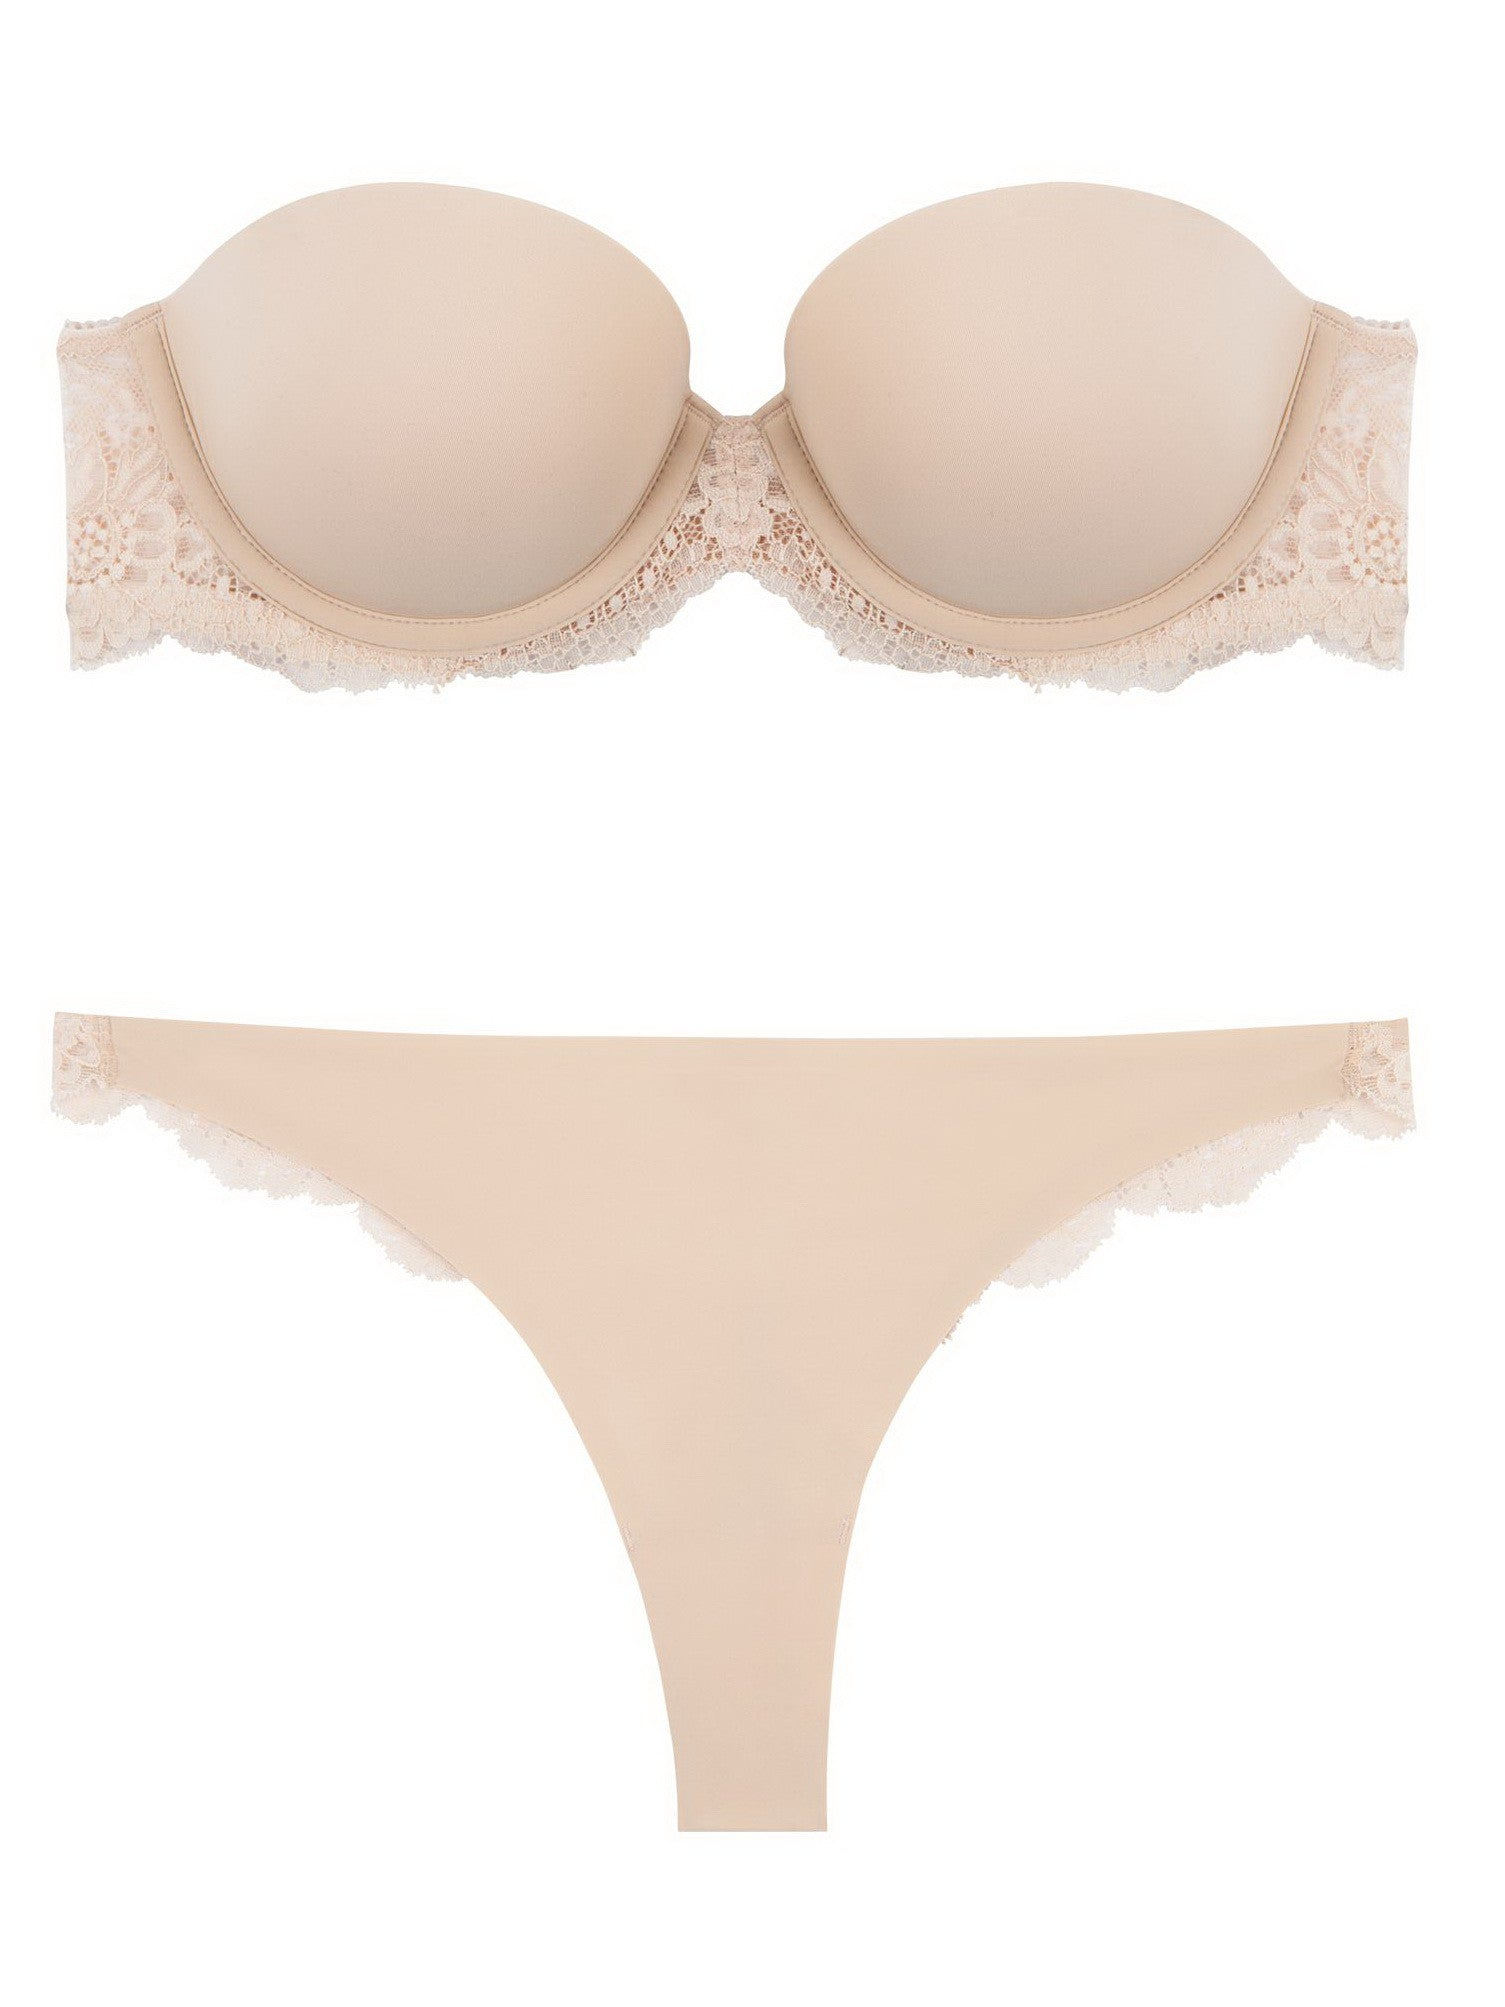 Stella McCartney Lingerie New Stella Smooth & Lace Thong - Knickers & Pearls Boutique - 2